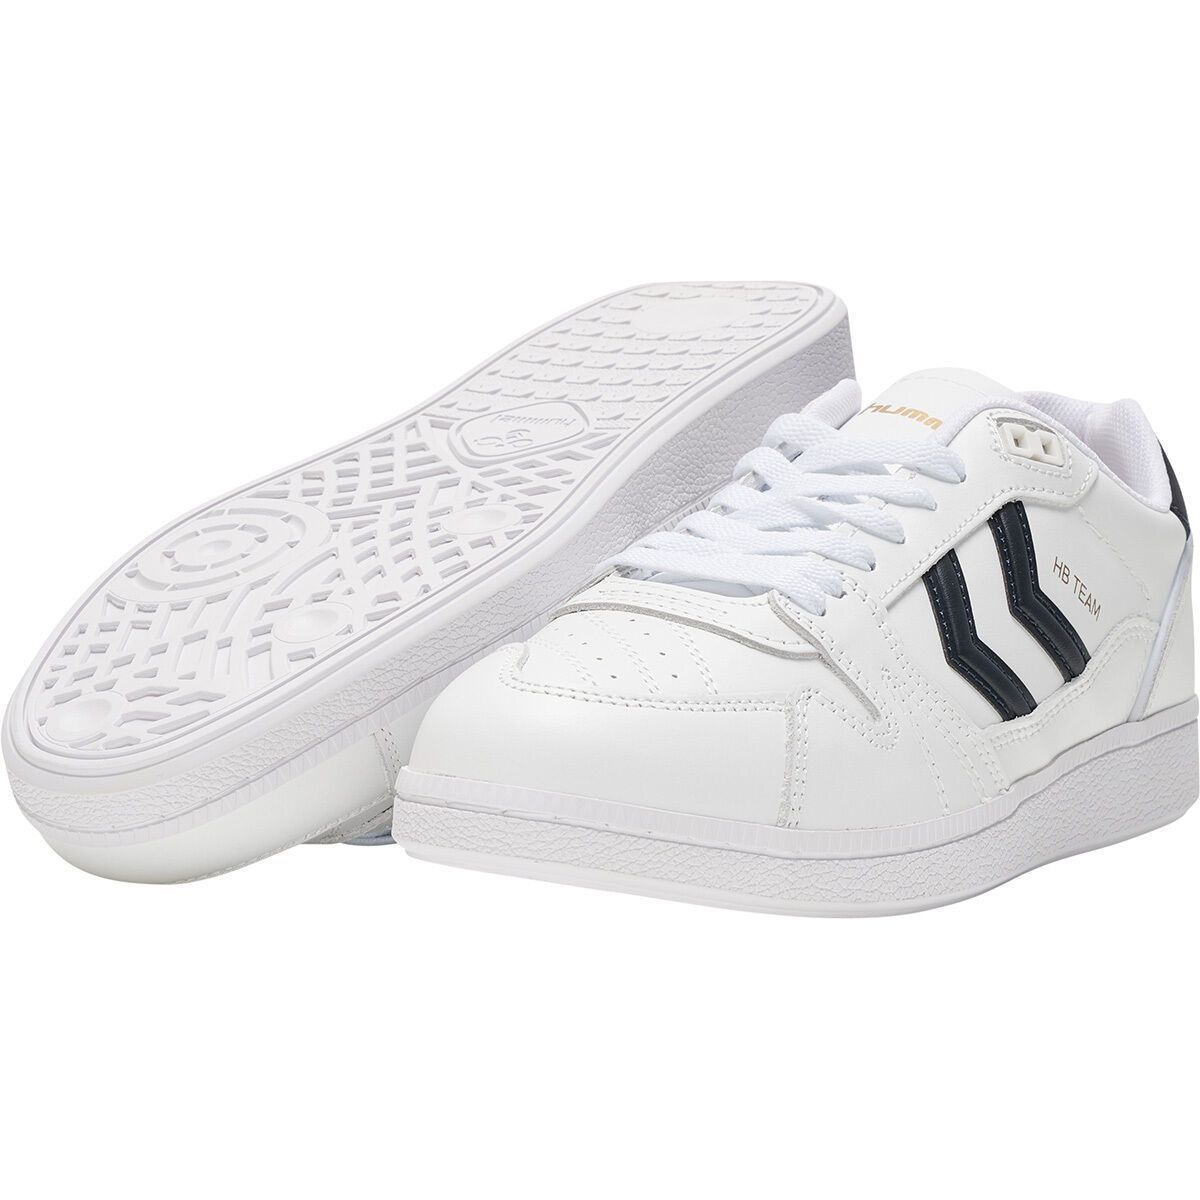 Hummel homme hb team leather blanc1284101_5